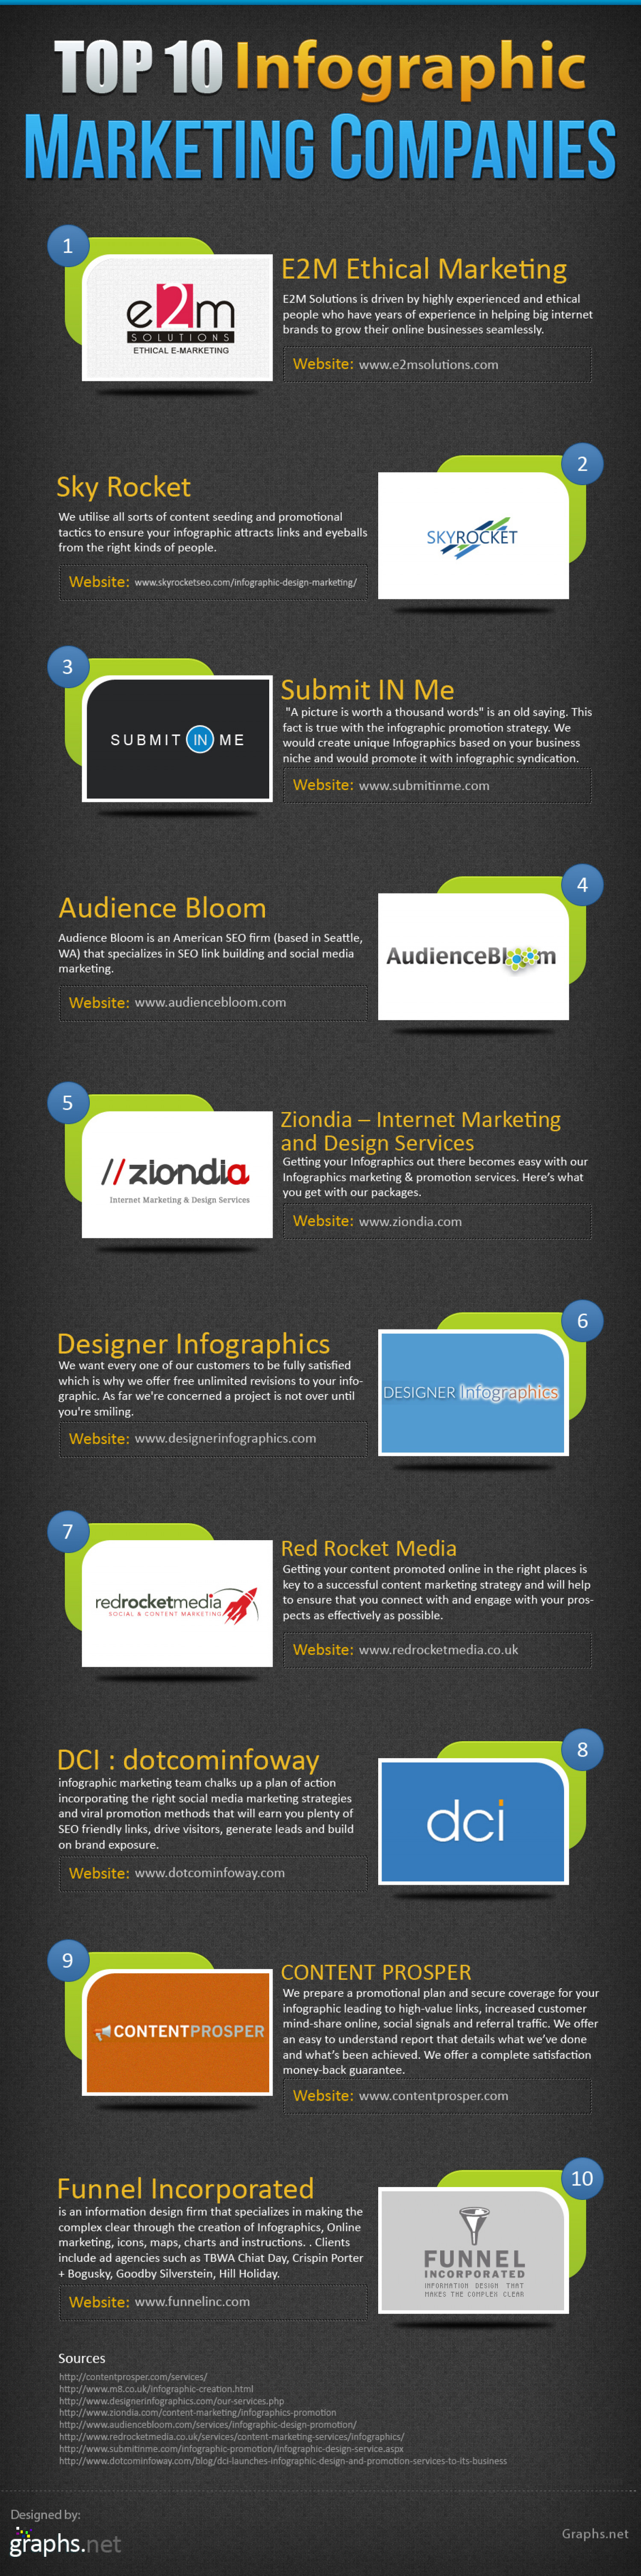 Top 10 Infographic Marketing Companies Infographic